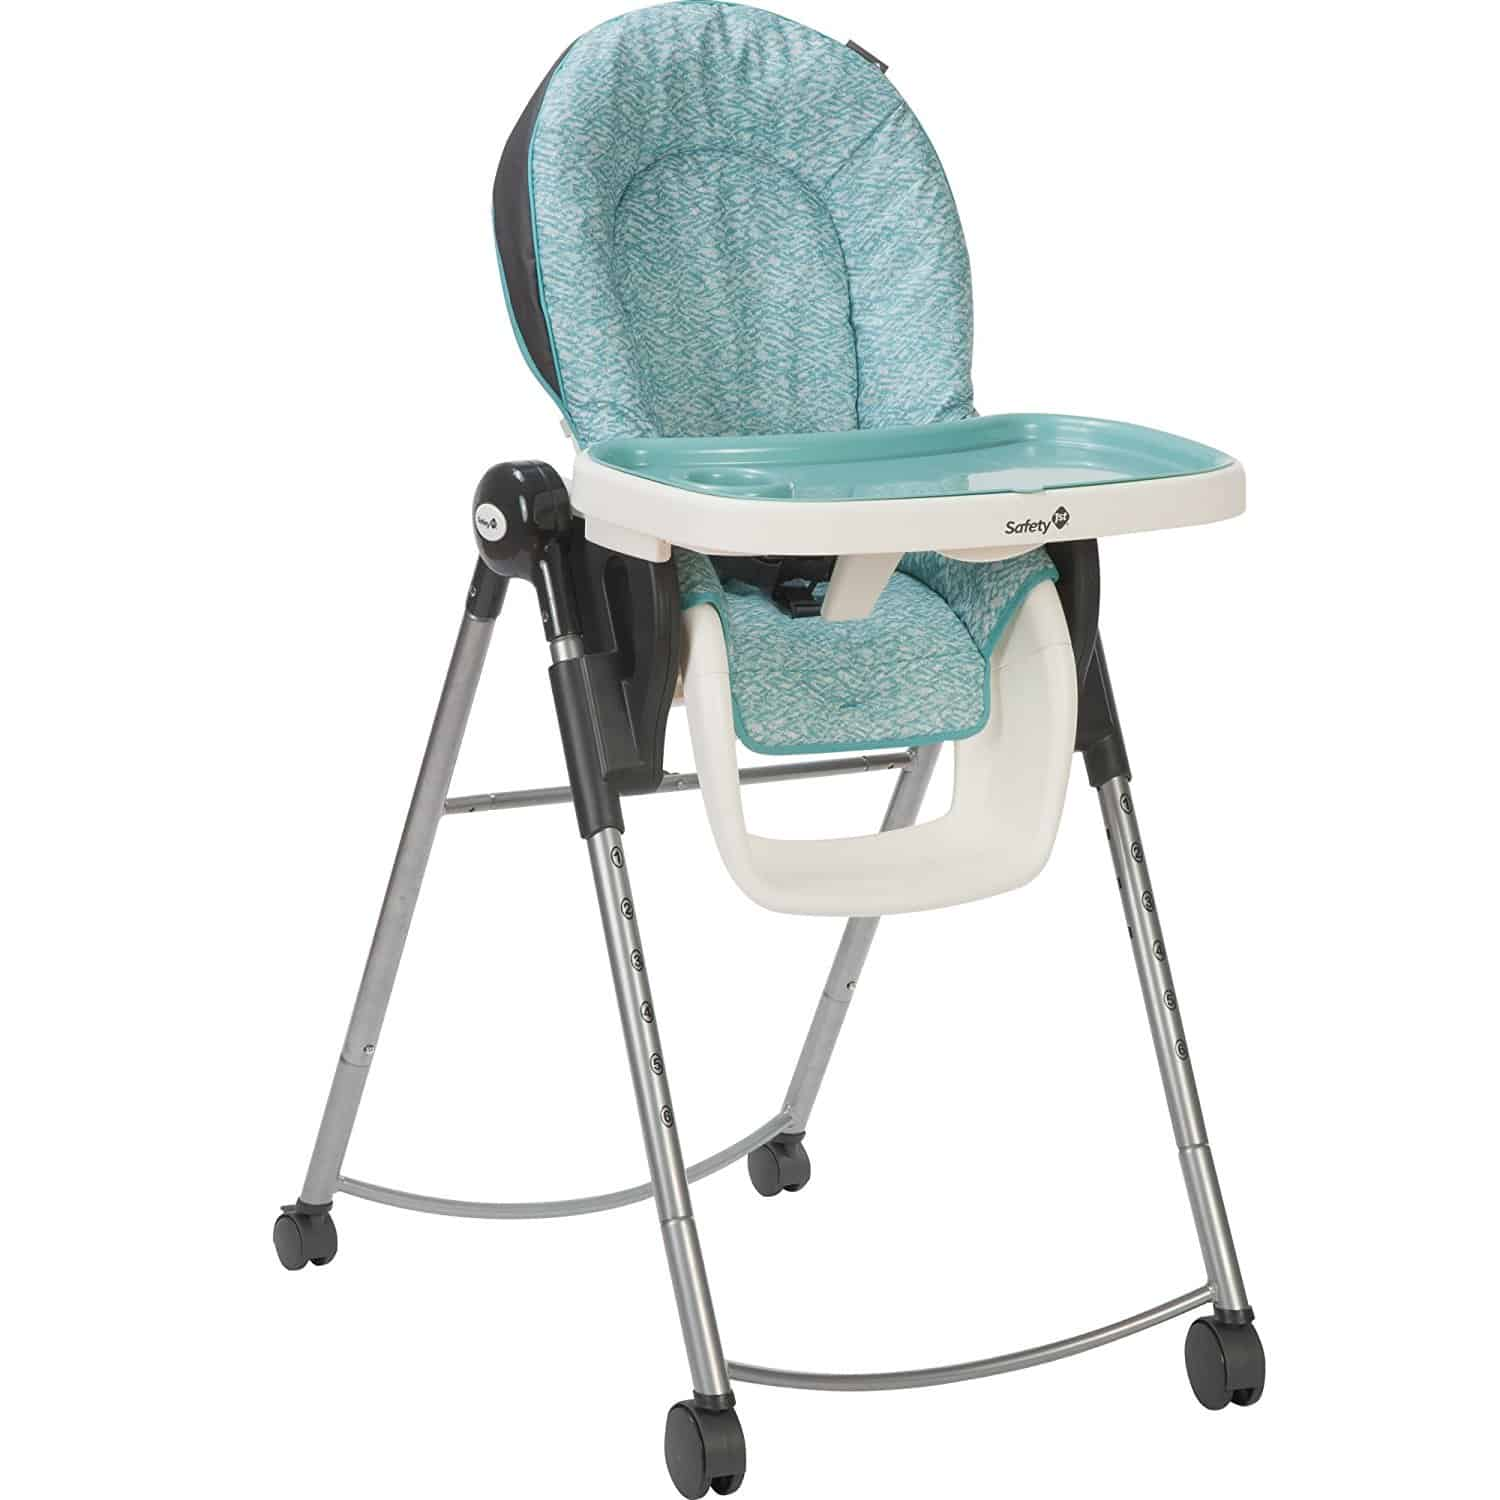 High Chair brand review: Safety 1st High Chairs | Baby Bargains